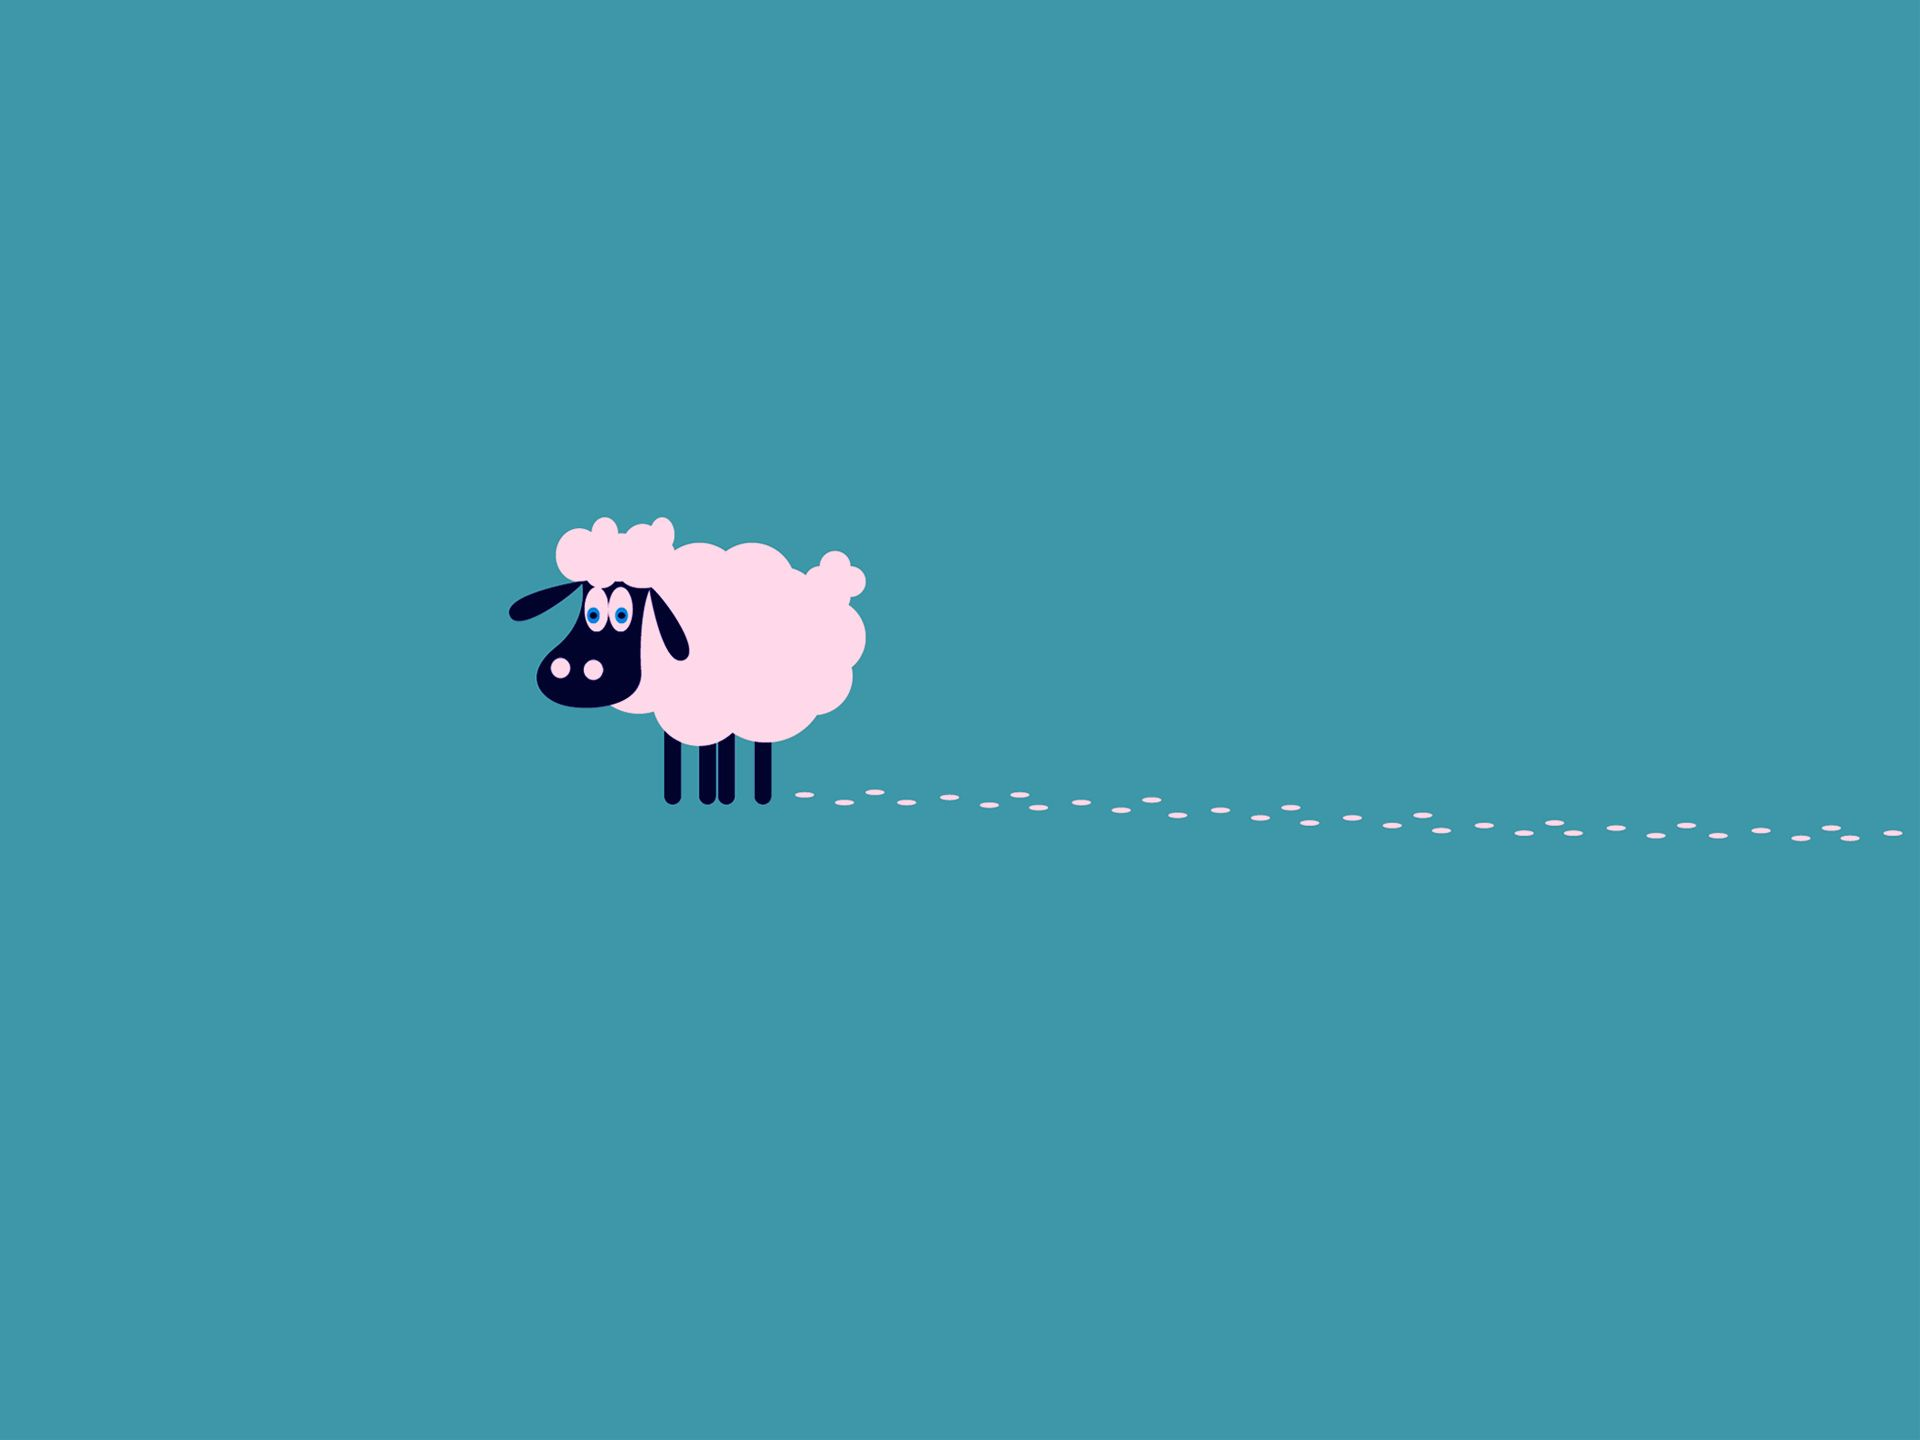 Apple Wallpapers Cool Mac Wallpaper The Sheep Without A Shepherd On Background